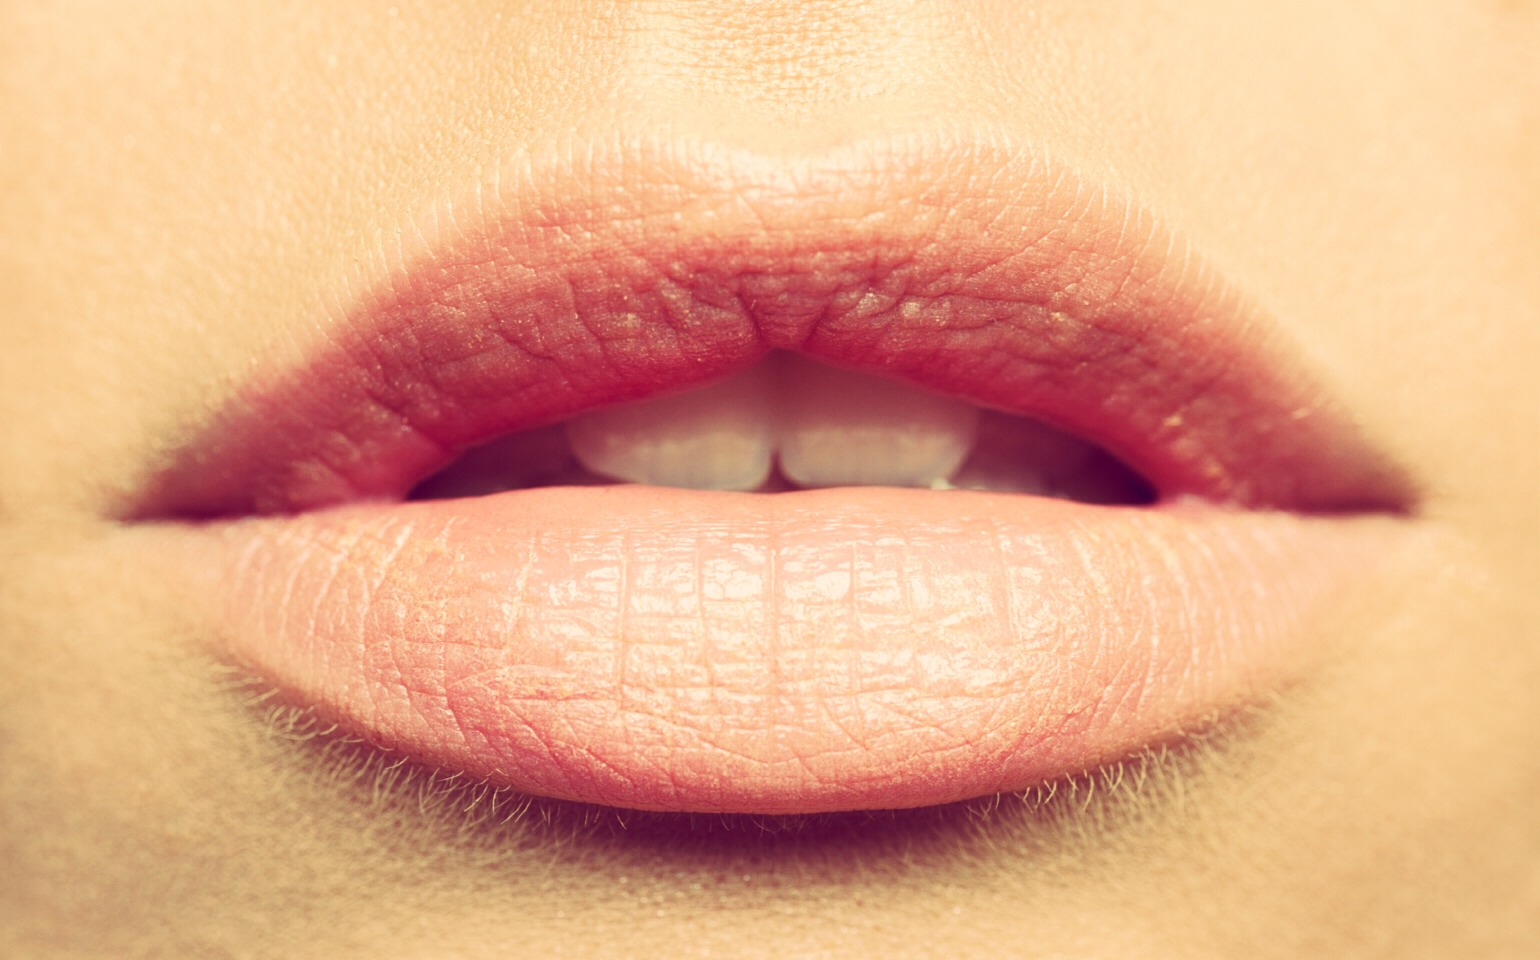 There's the obvious of adding Vaseline to your lips to moisturize them